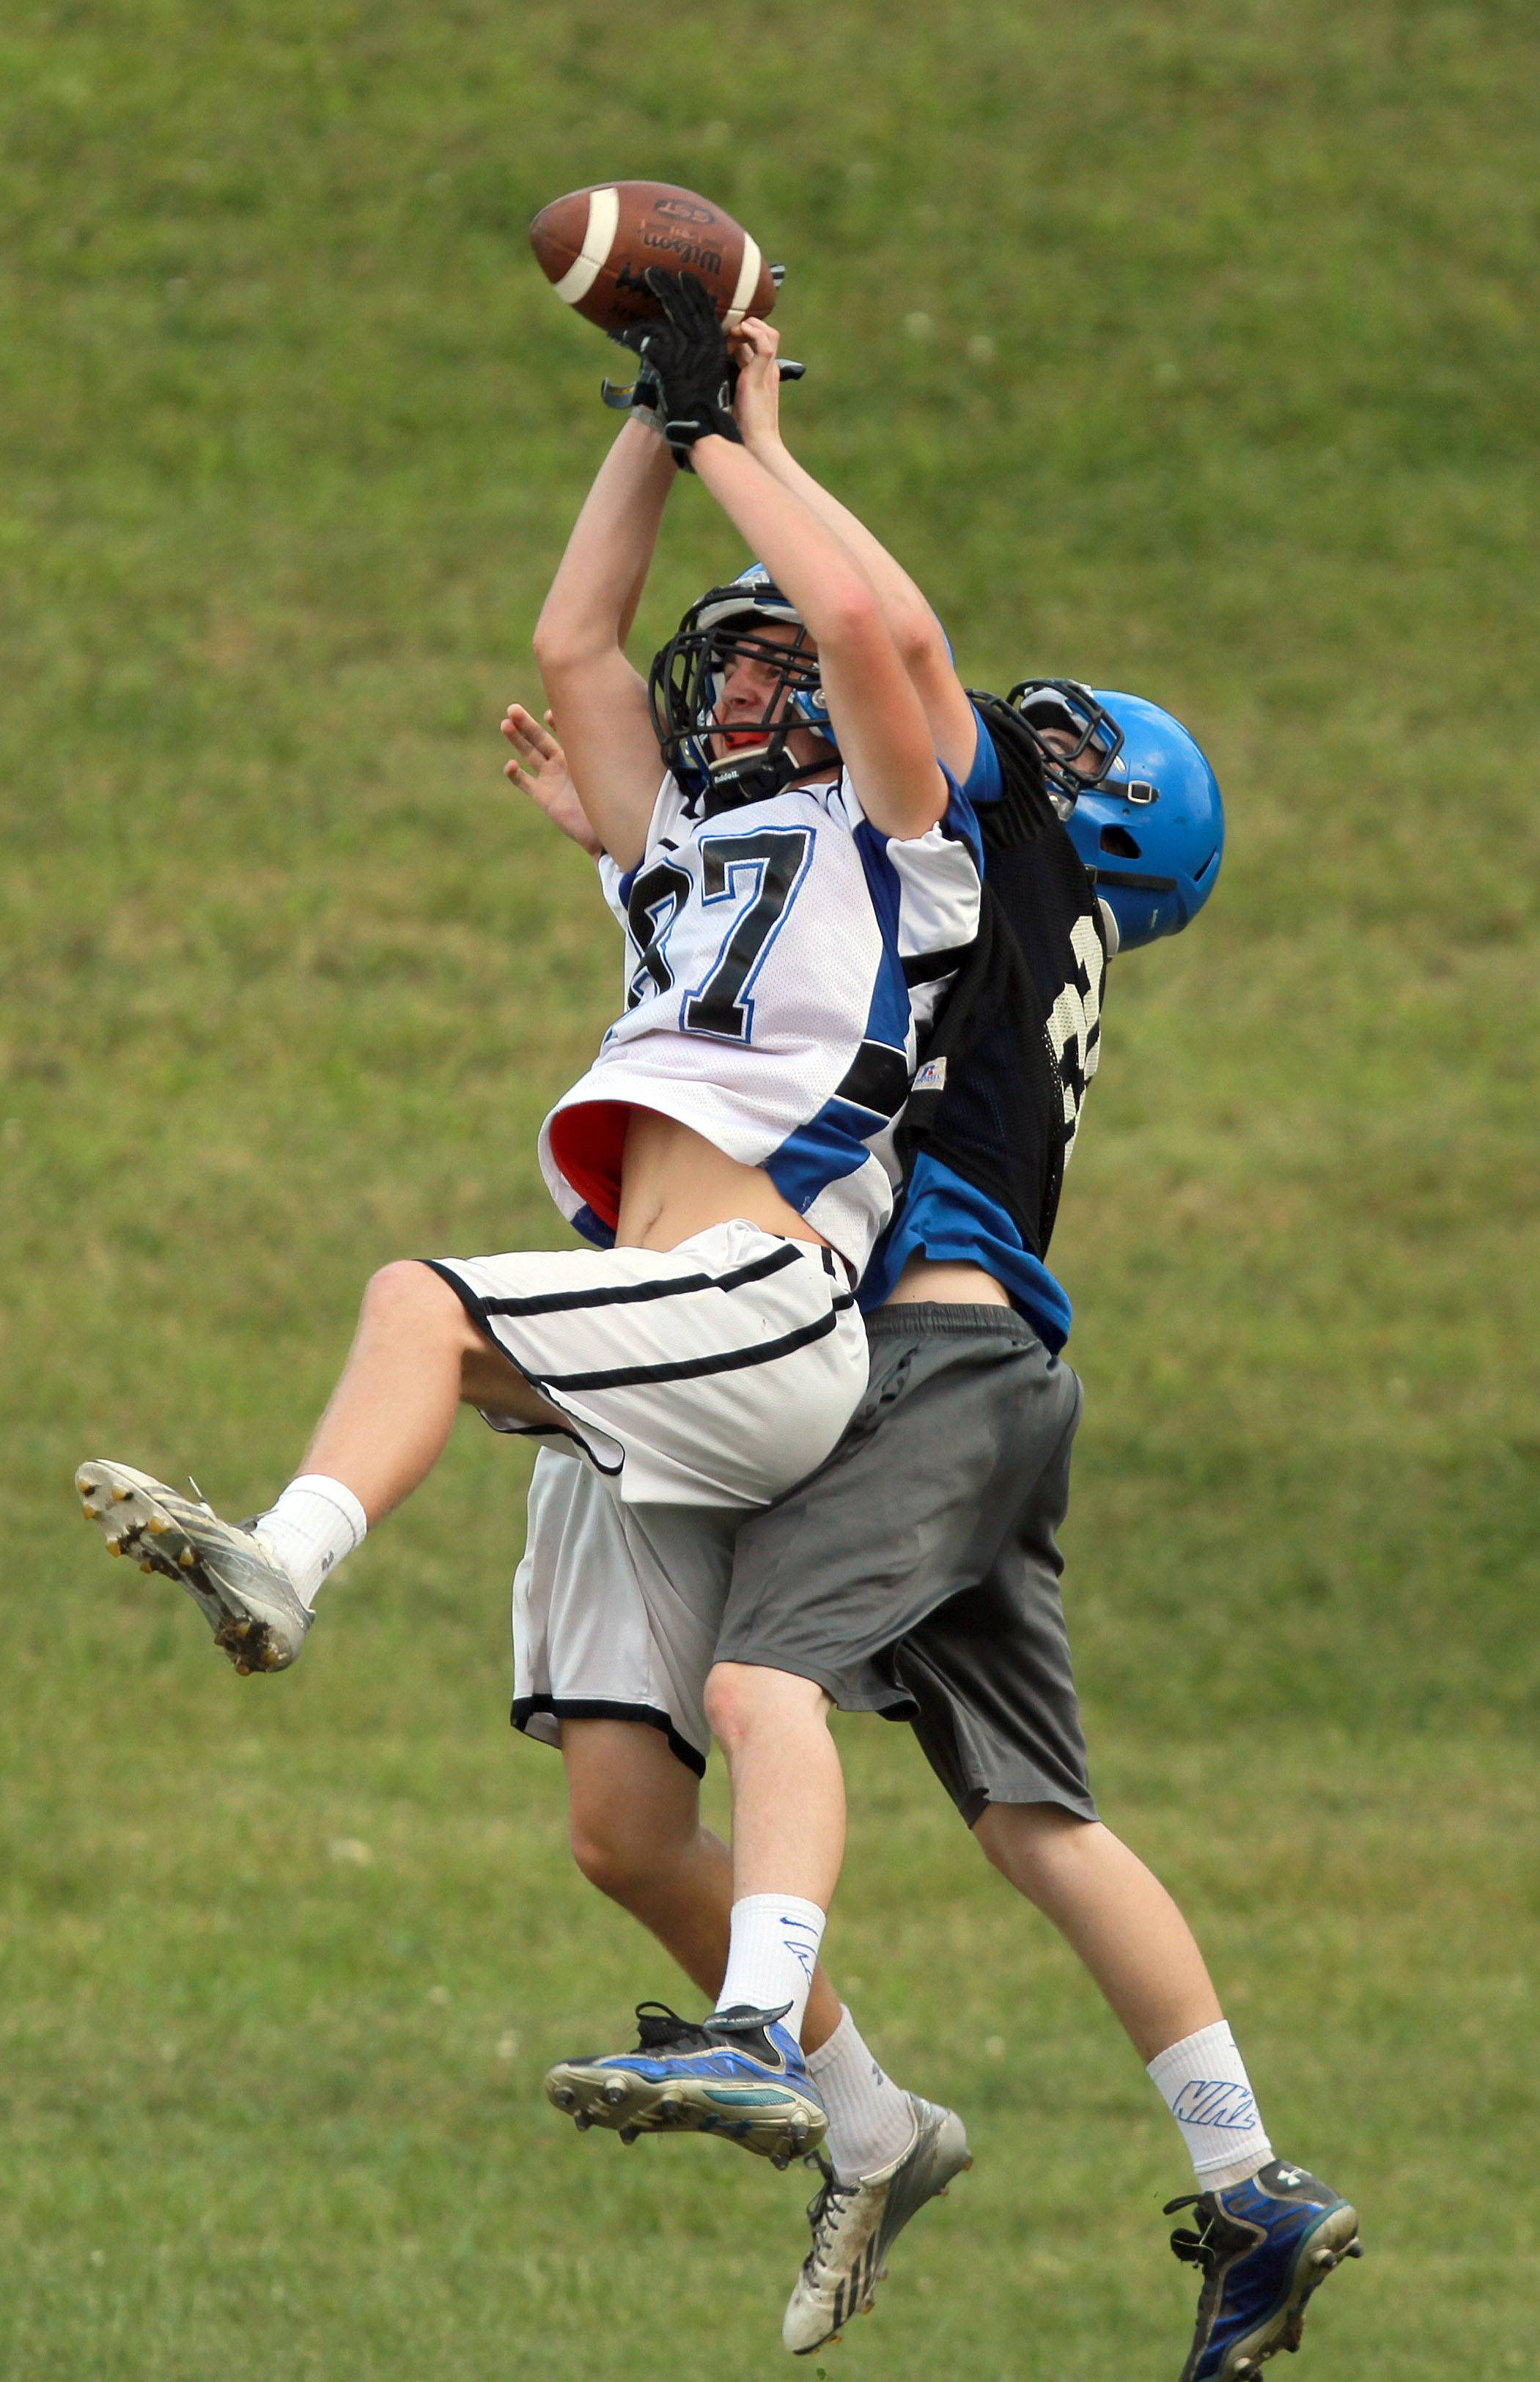 Pat Rigby ,left, goes up for a pass with Jeremy Brown during football practice Monday at Lake Zurich High School.